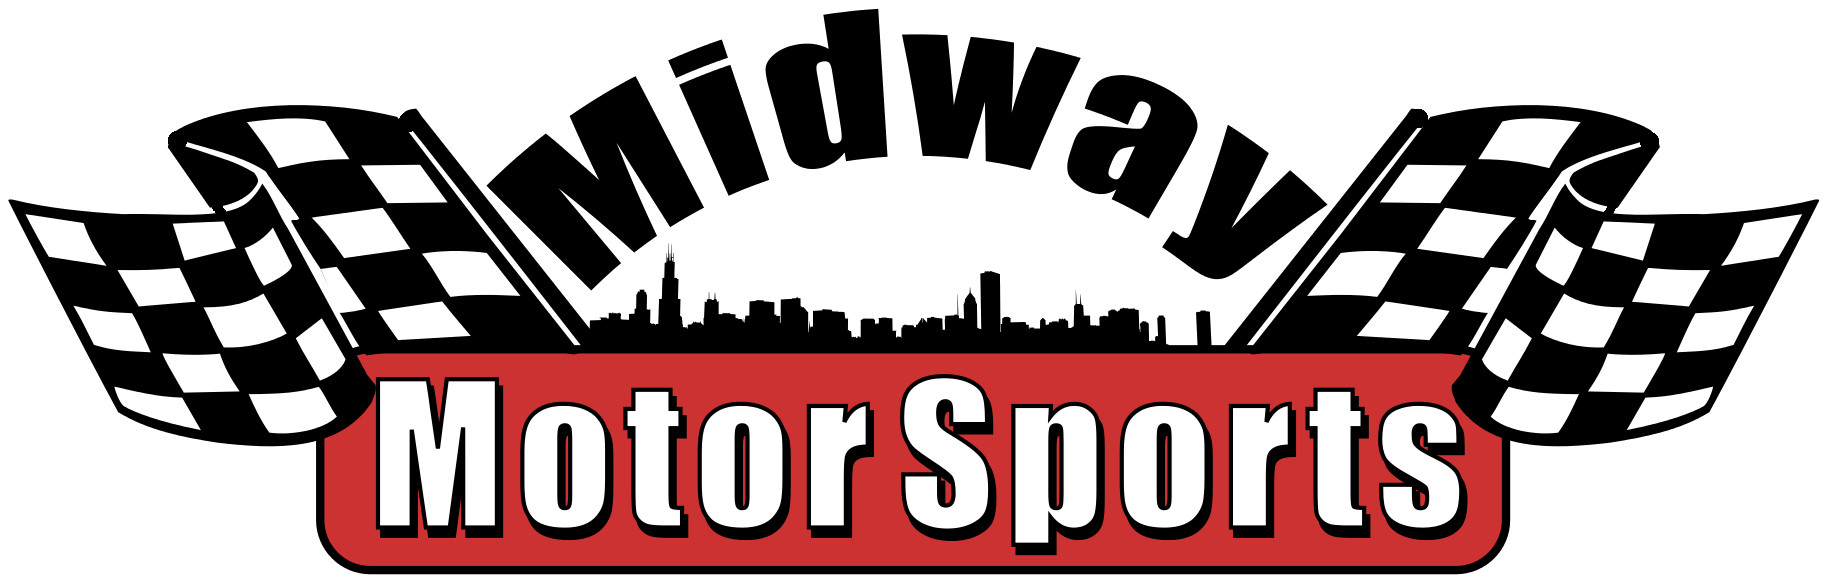 Midway Motorsports